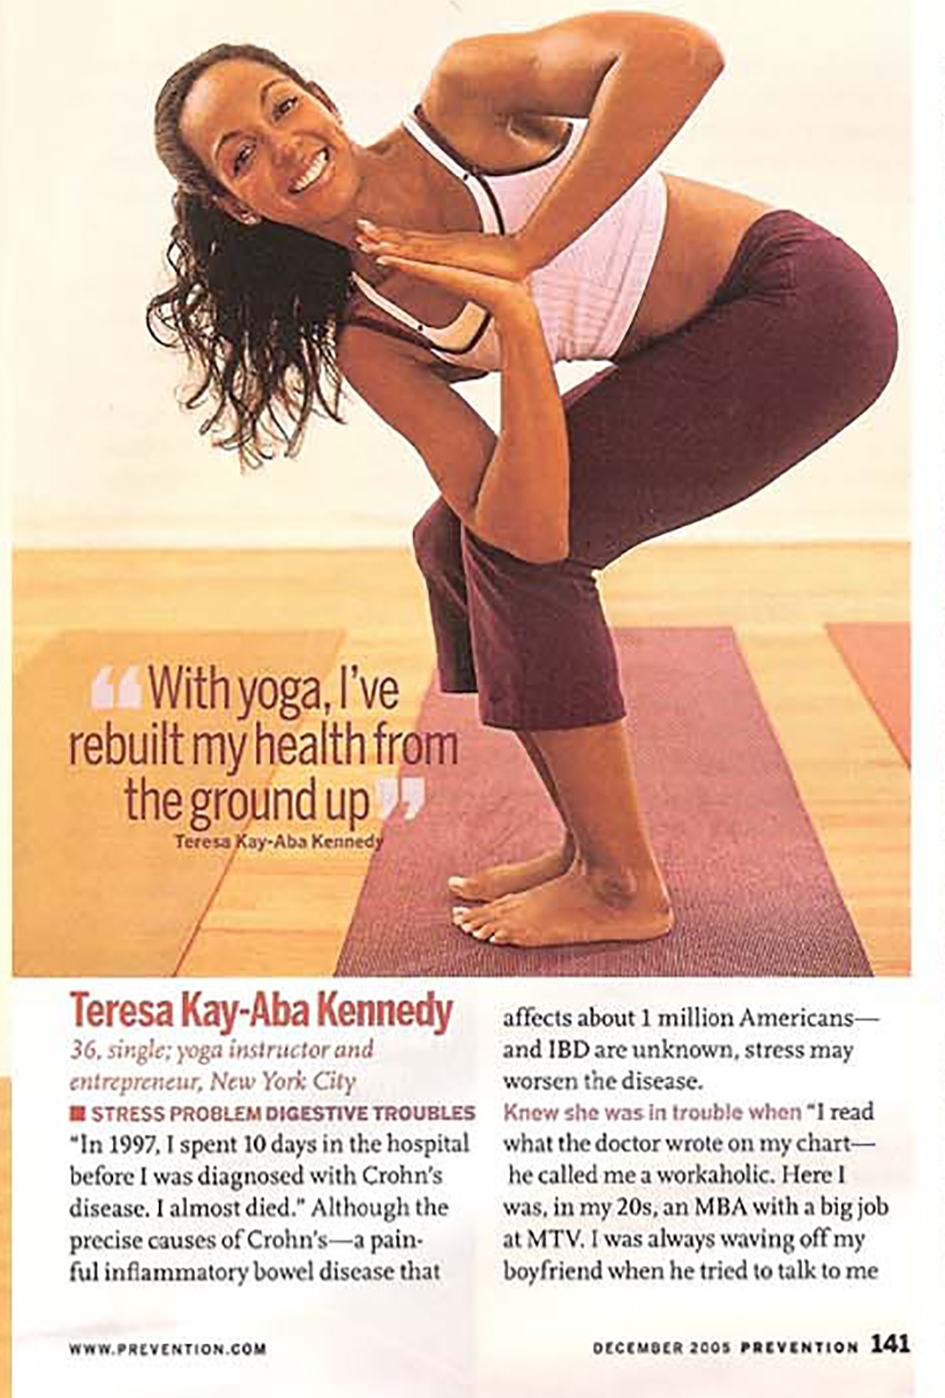 Teresa Kay-Aba Kennedy featured in Prevention Magazine - December 2005